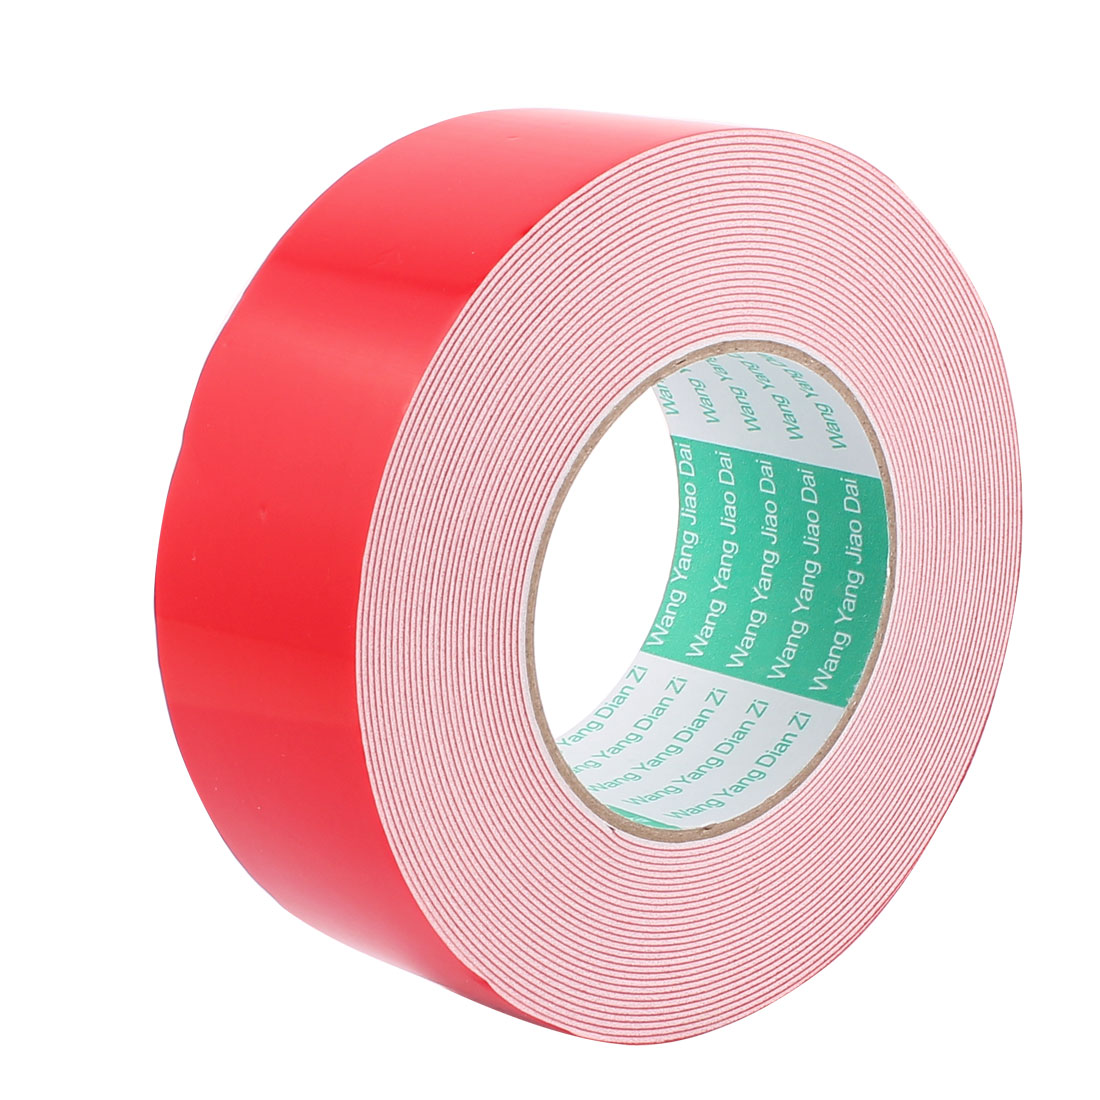 5CM Width 10M Long 1MM Thick White Dual Sided Waterproof Sponge Tape for Car